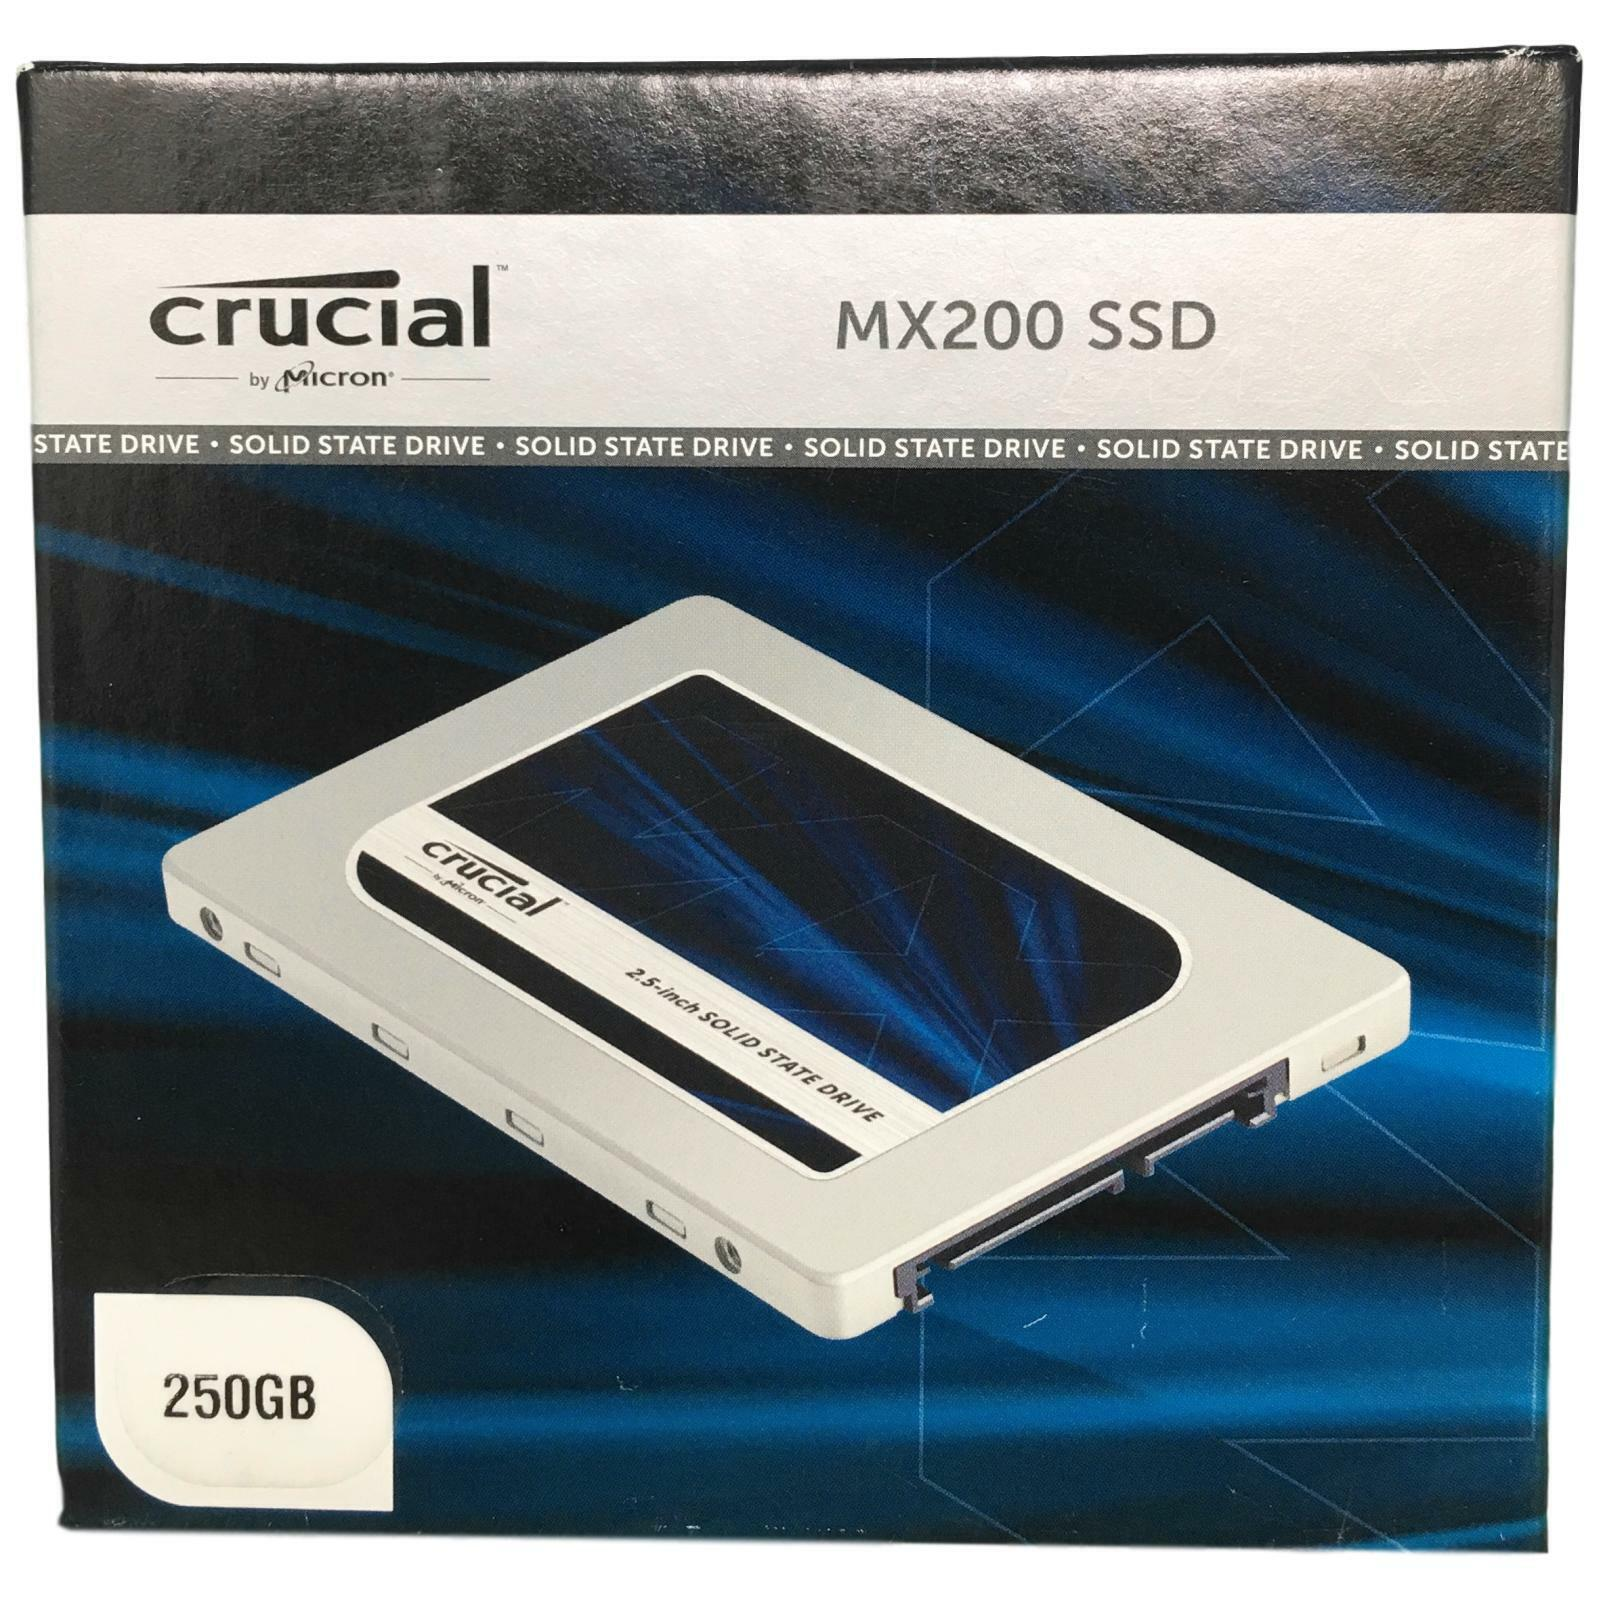 7mm to 9.5mm Adapter Spacer 2.5in Solid State Drive SSD-542-23895